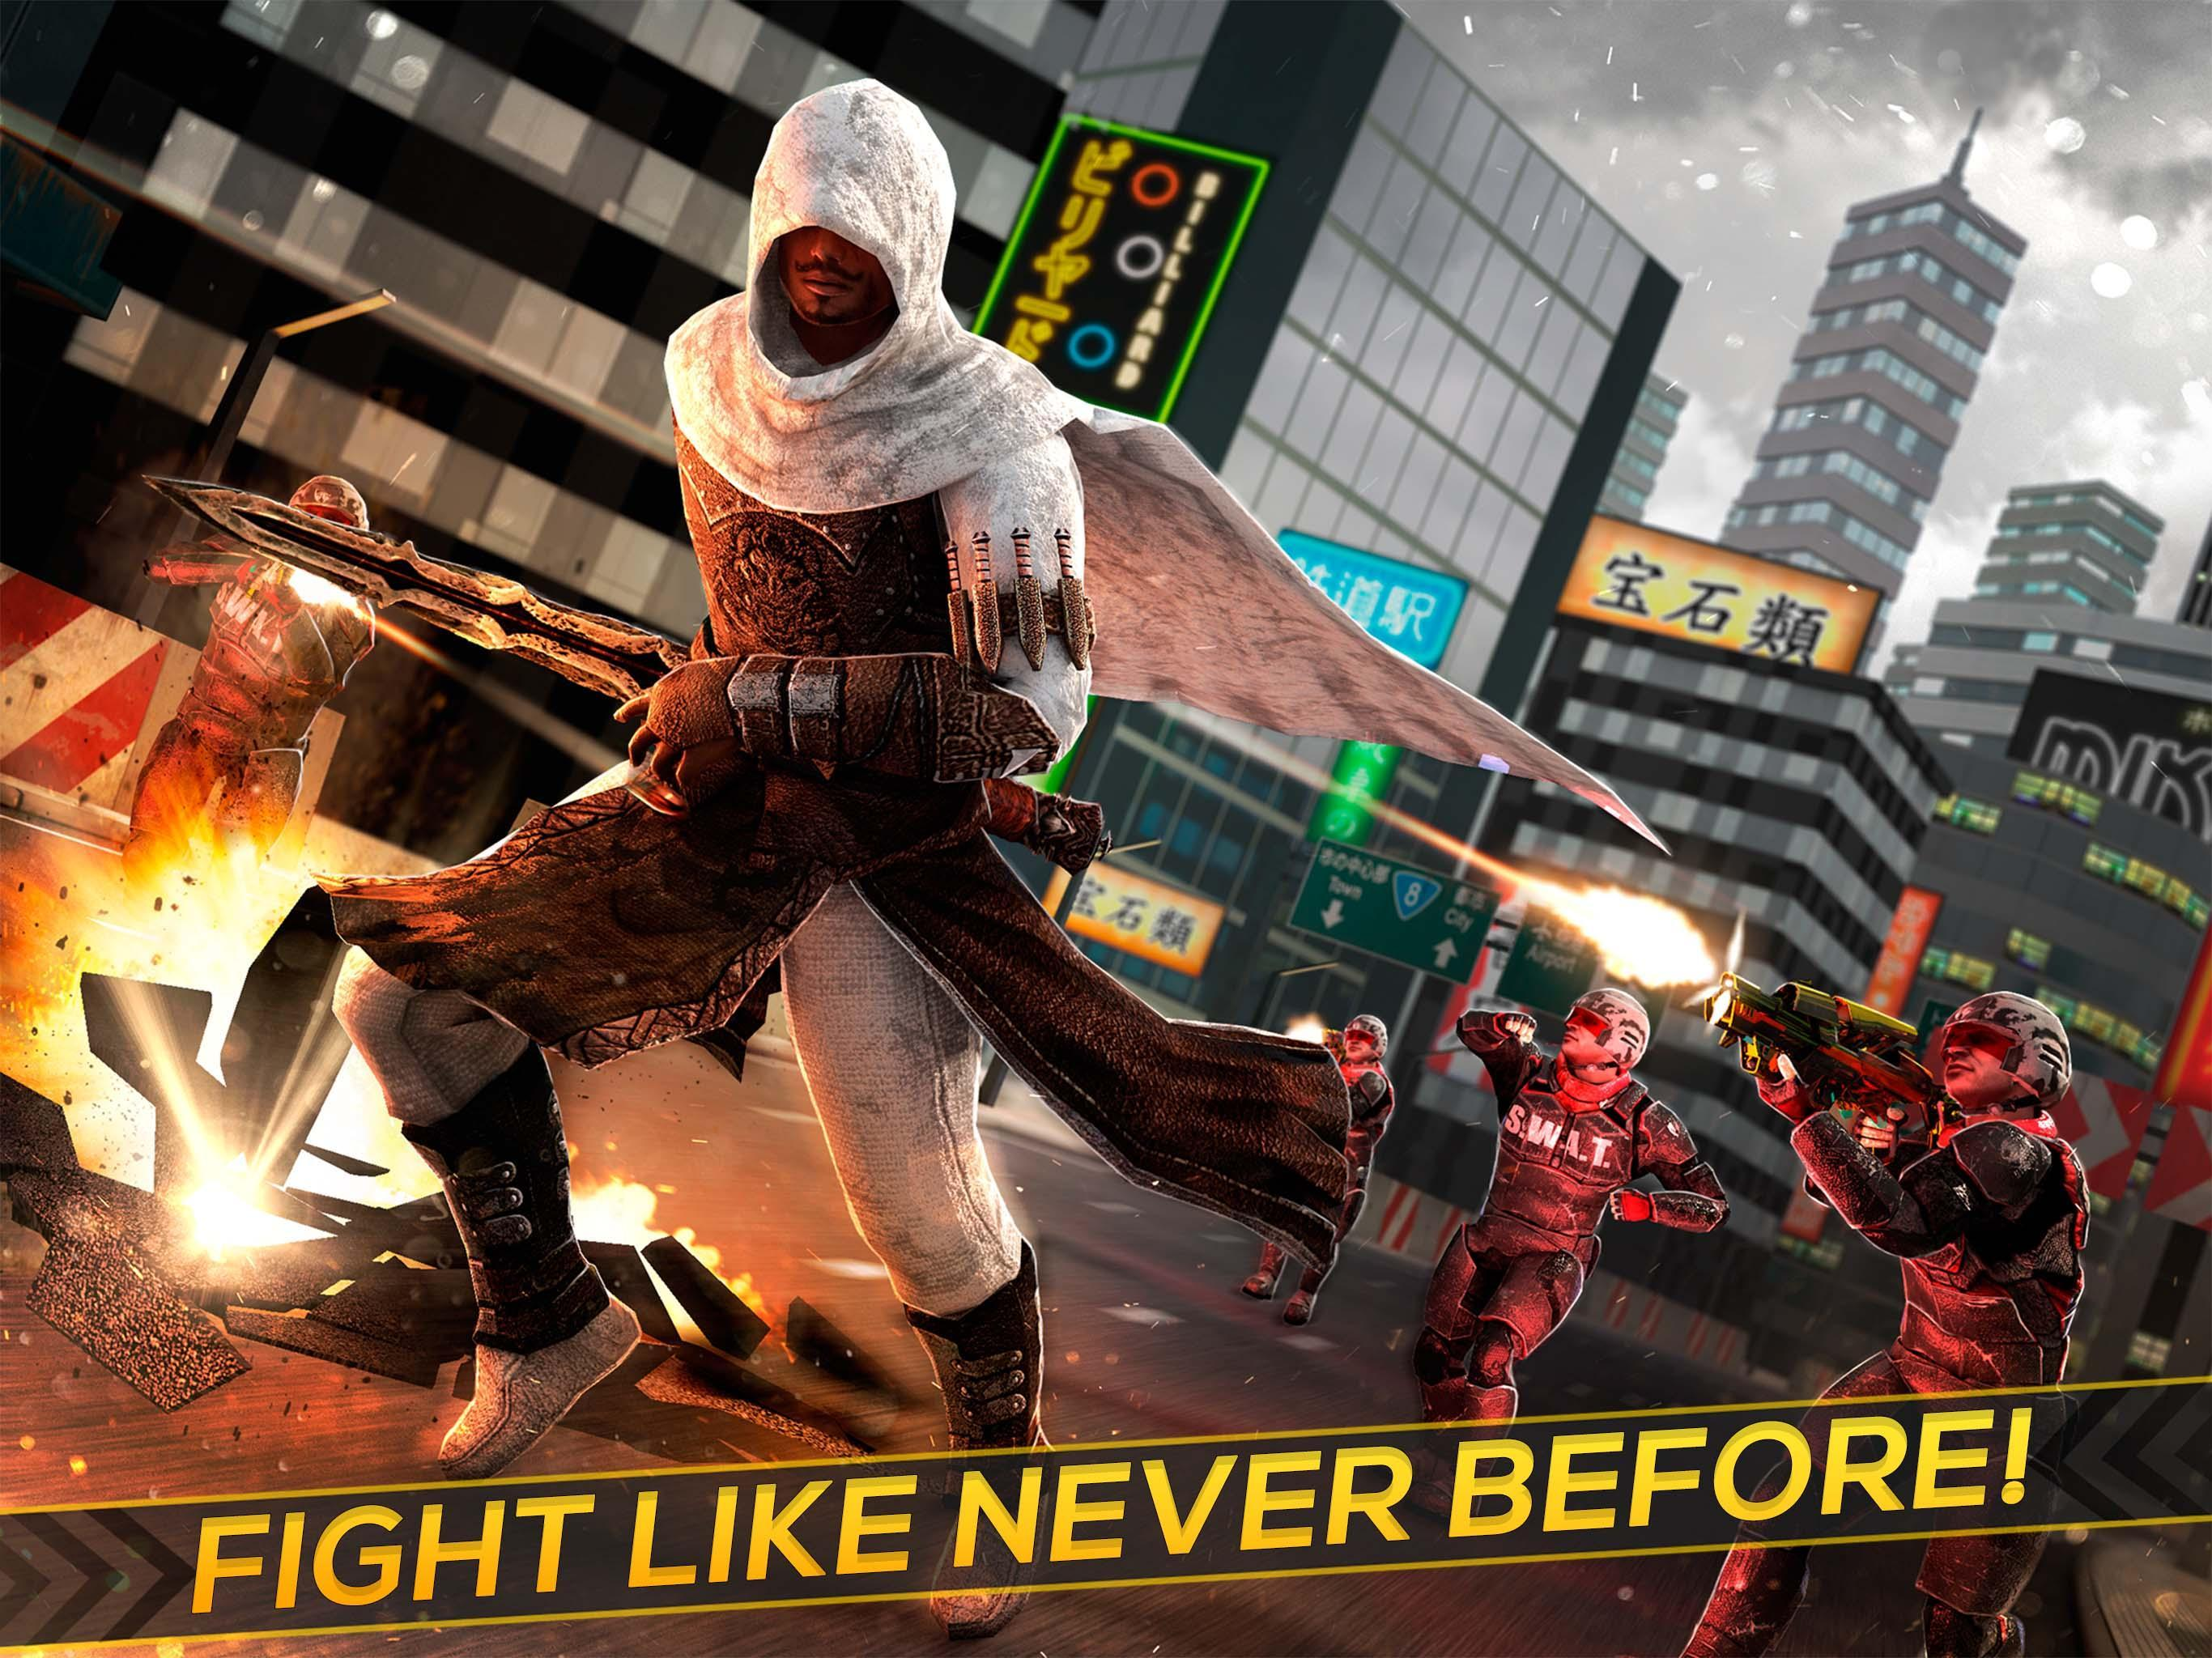 Killer's Creed Soldiers - Fighting Warrior Attack for Android - APK